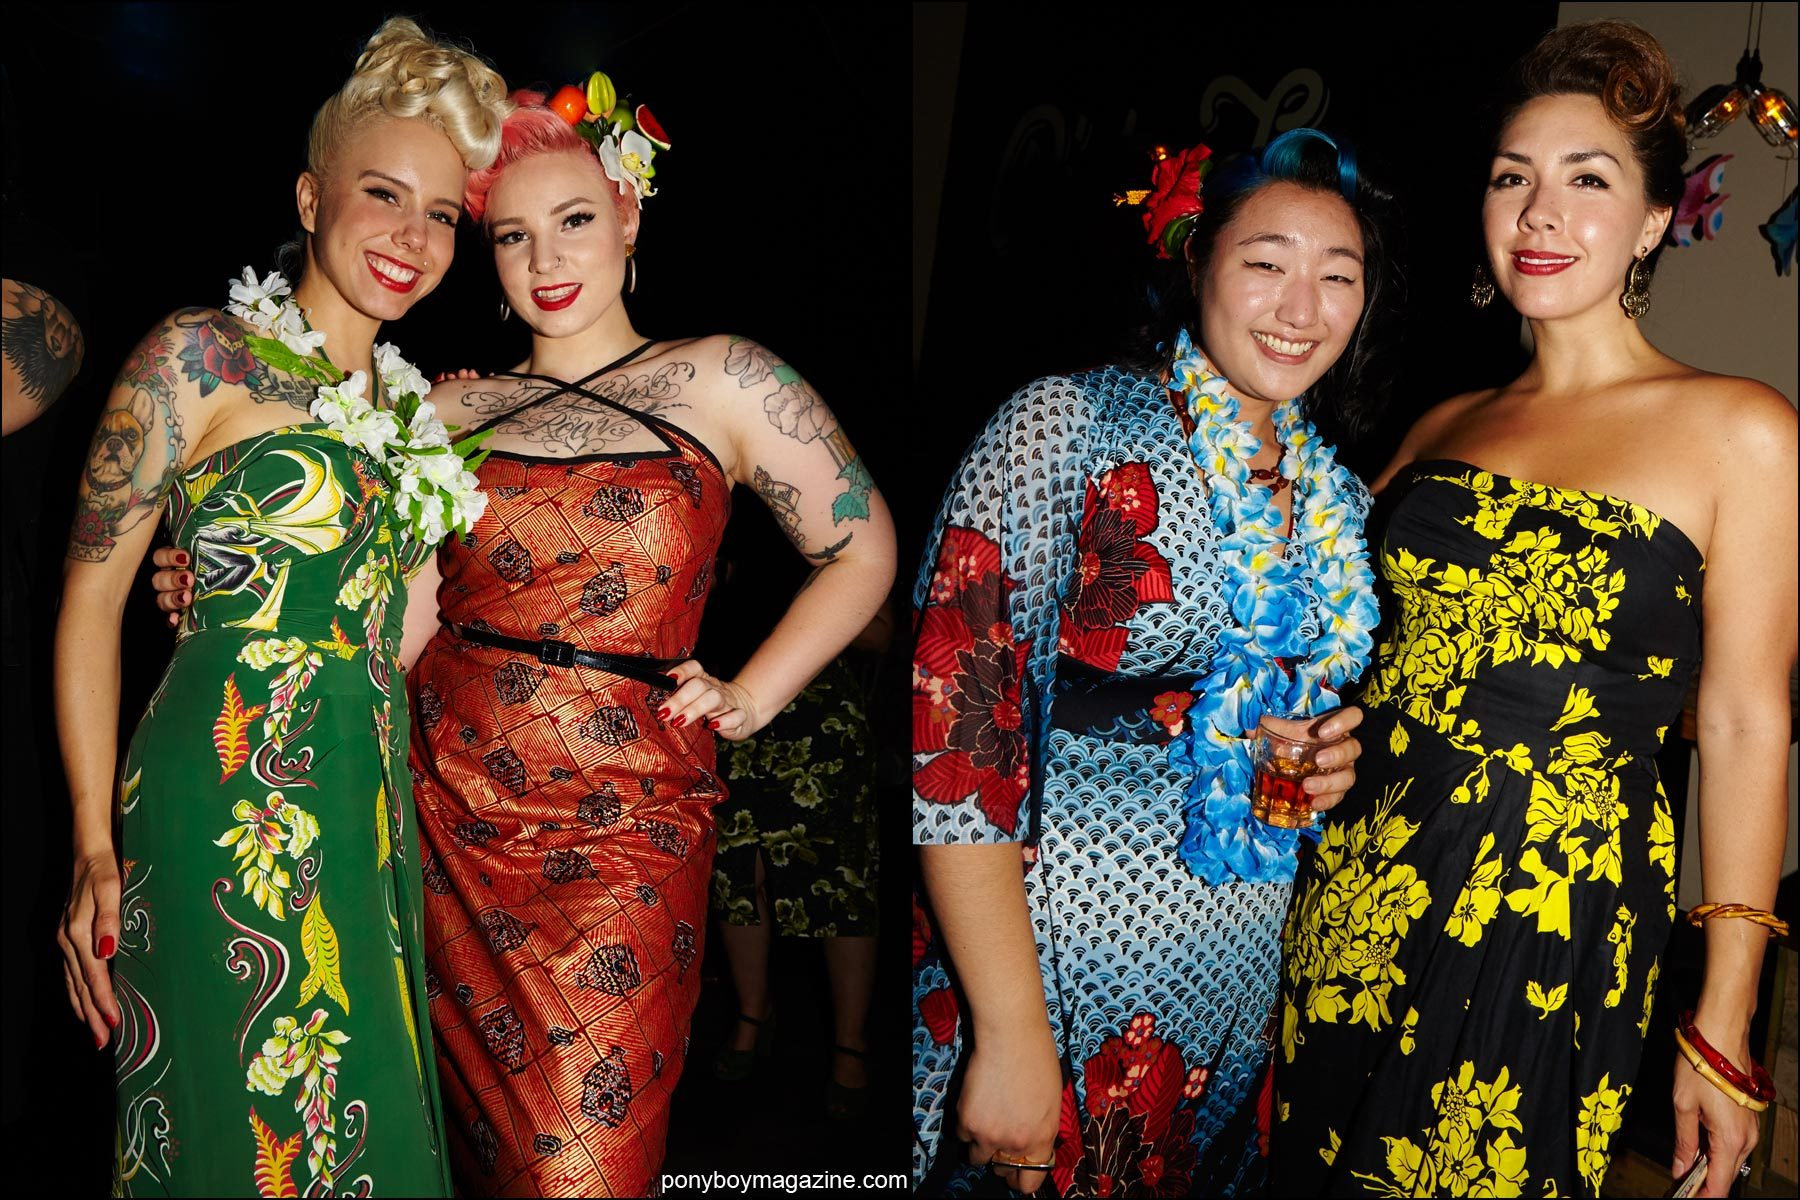 Beauties photographed in vintage Hawaiian fashions, at the Hula Rock Vol 2 Rebel Night weekender in New York City. Photographed for Ponyboy magazine by Alexander Thompson NY.